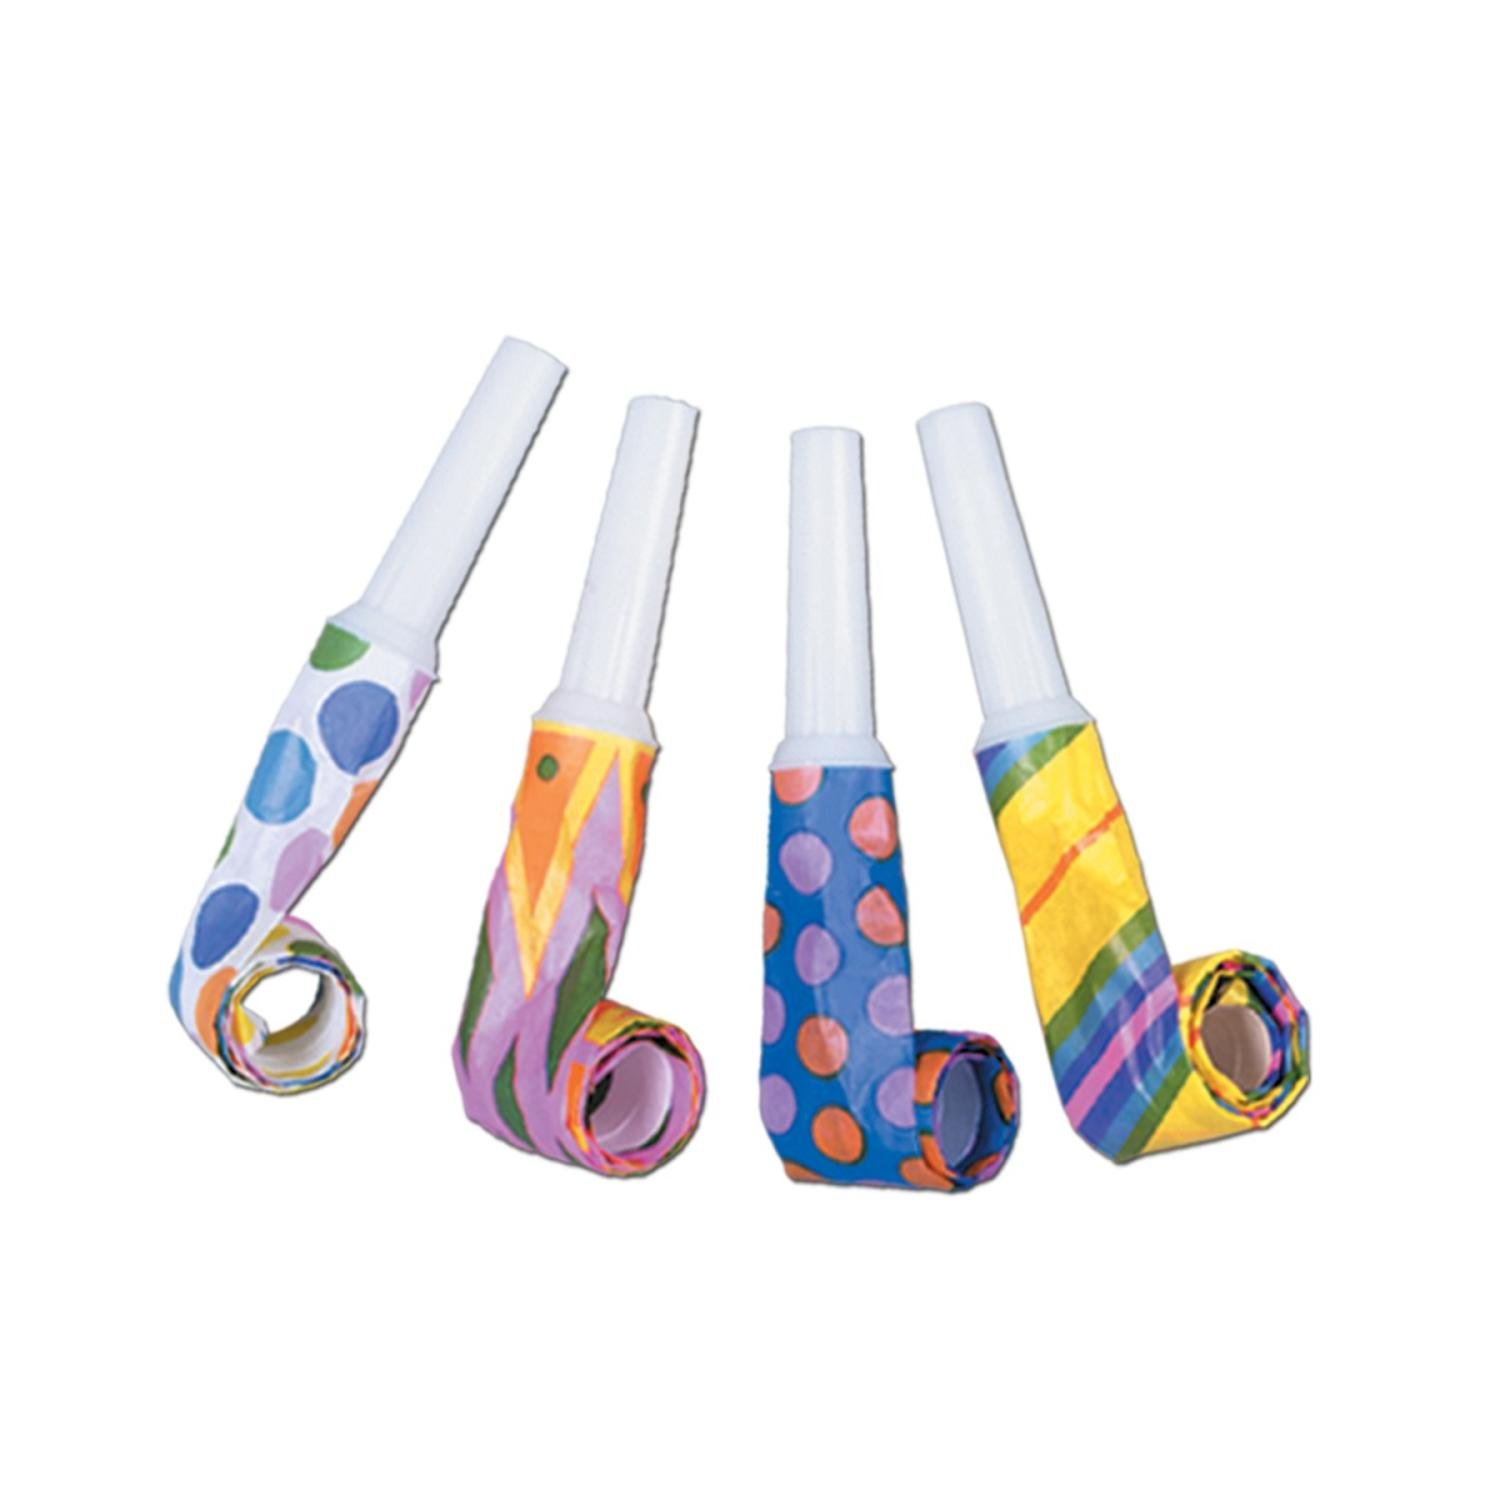 Club Pack of 192 Multi-Colored Noisemaker Blowout Party Accessories by Party Central